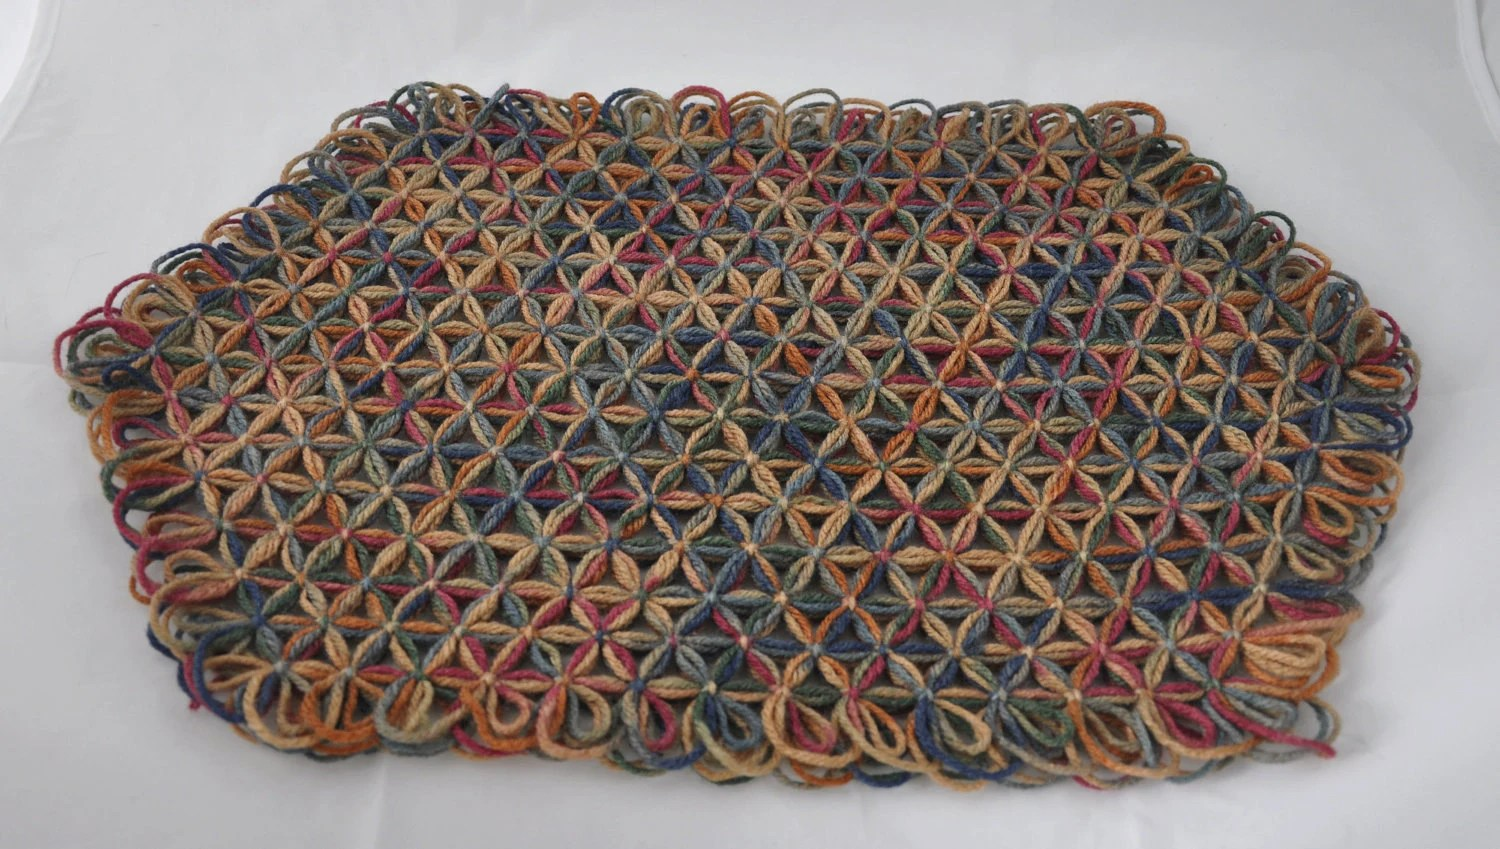 Large Trivet in 3 Layers of Painted Desert Multicolored Yarn with Painted Desert Ties - Fall Autumn Colors